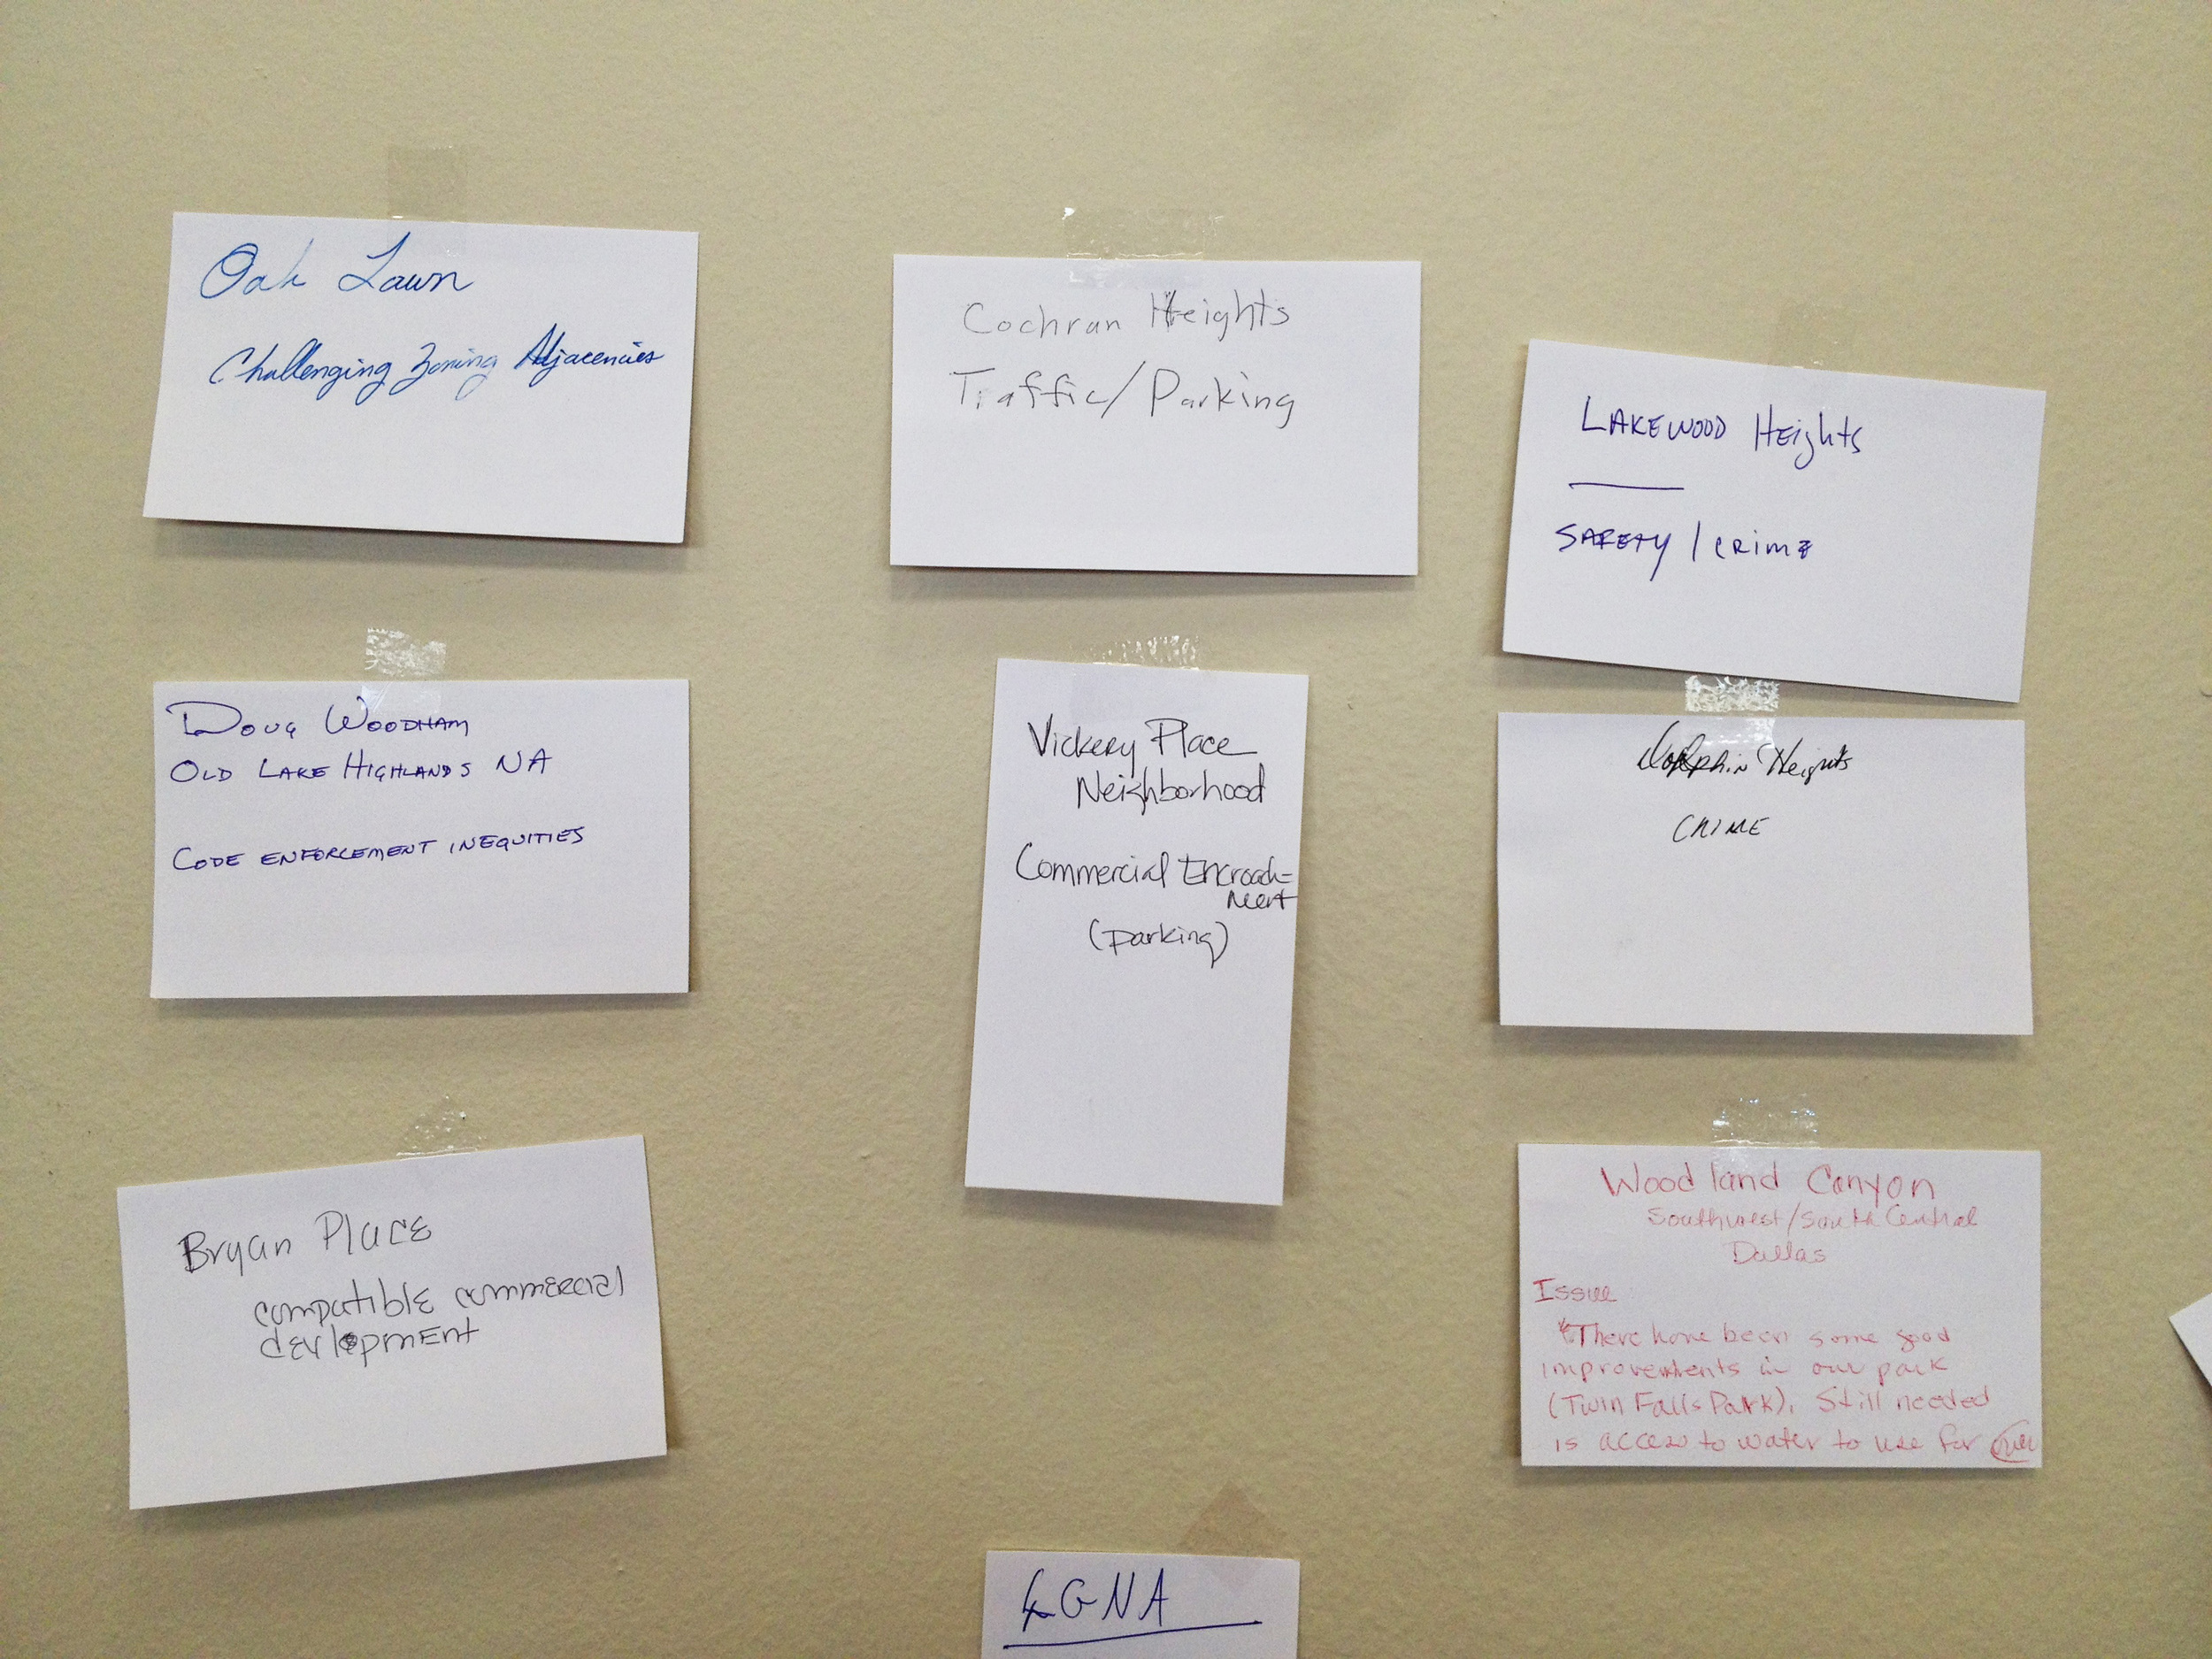 Participants identified issues in their neighborhoods.